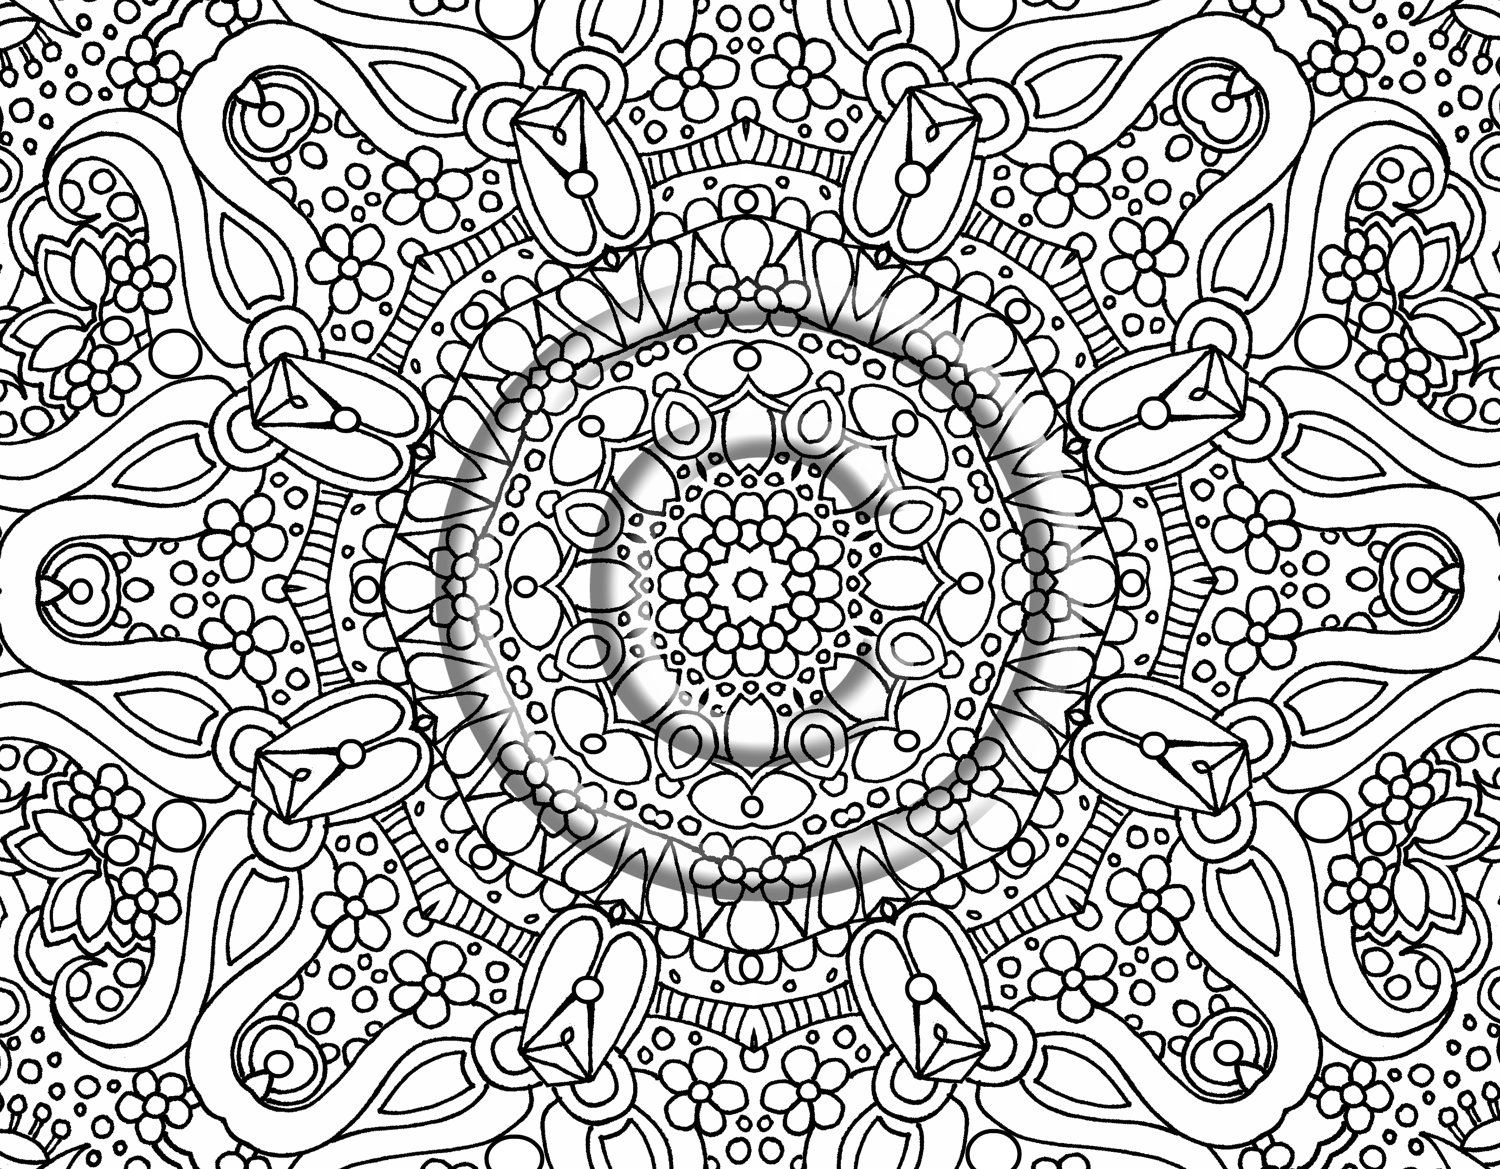 Coloring pages for adults